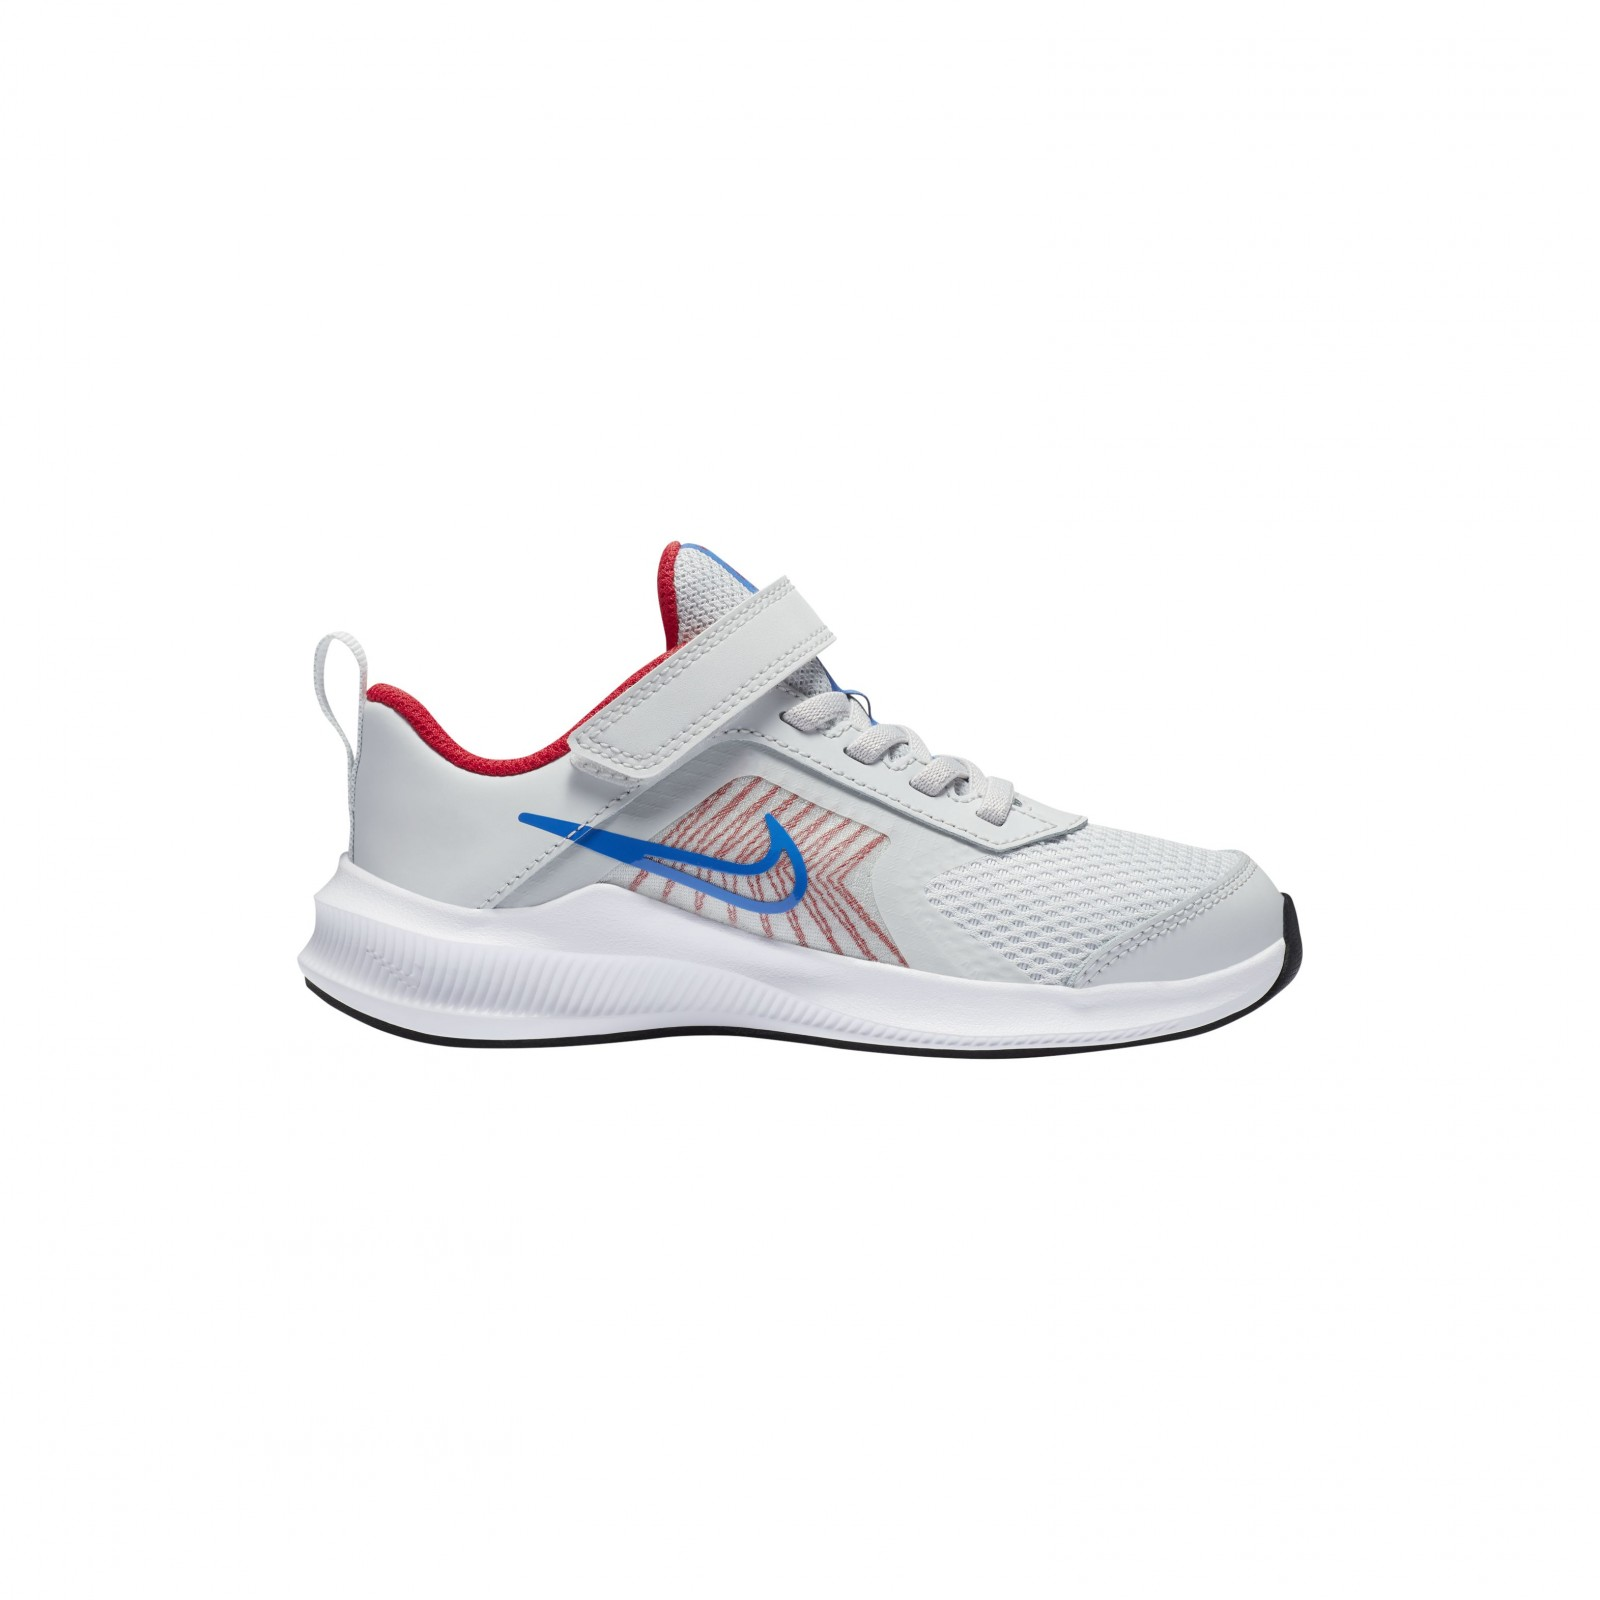 Nike Downshifter 11 PHOTON DUST/GAME ROYAL-UNIVERSITY RED